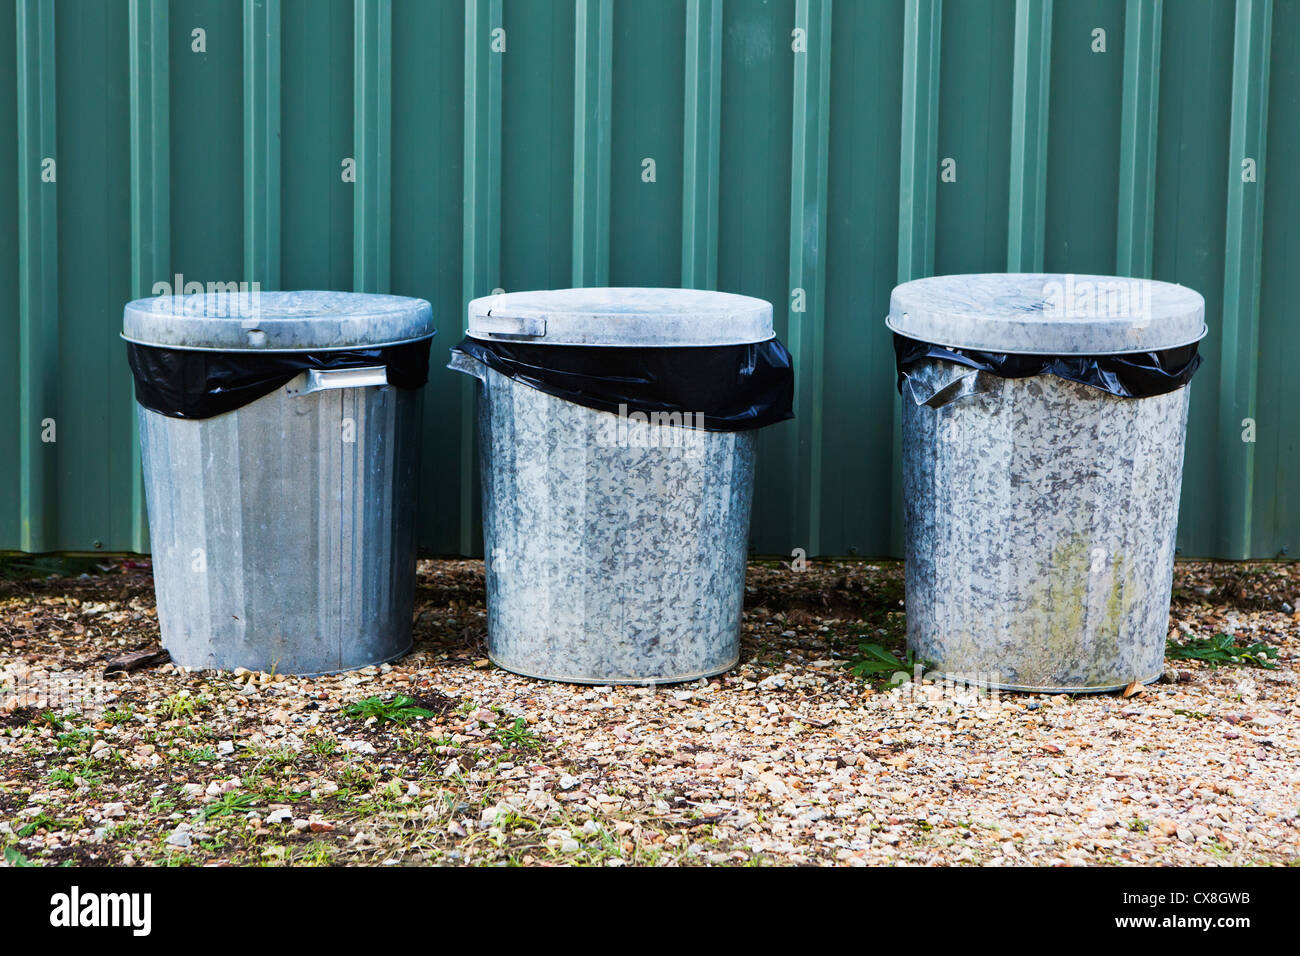 Metal Garbage Bins In A Row Against A Metal Wall; Murwillumba New South Wales Australia - Stock Image